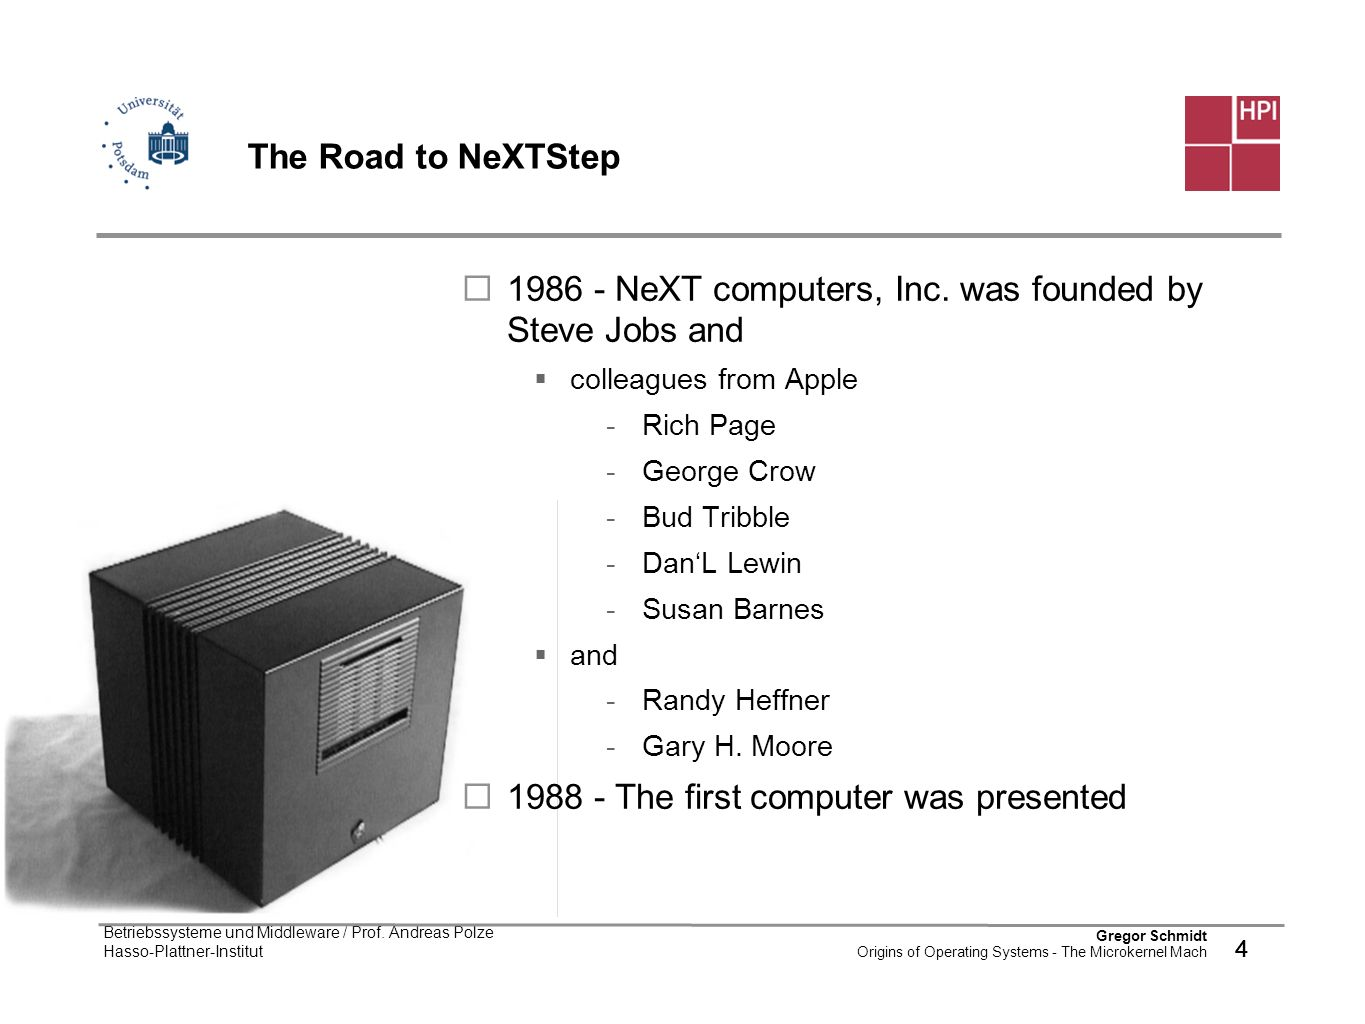 1986 - NeXT computers, Inc. was founded by Steve Jobs and